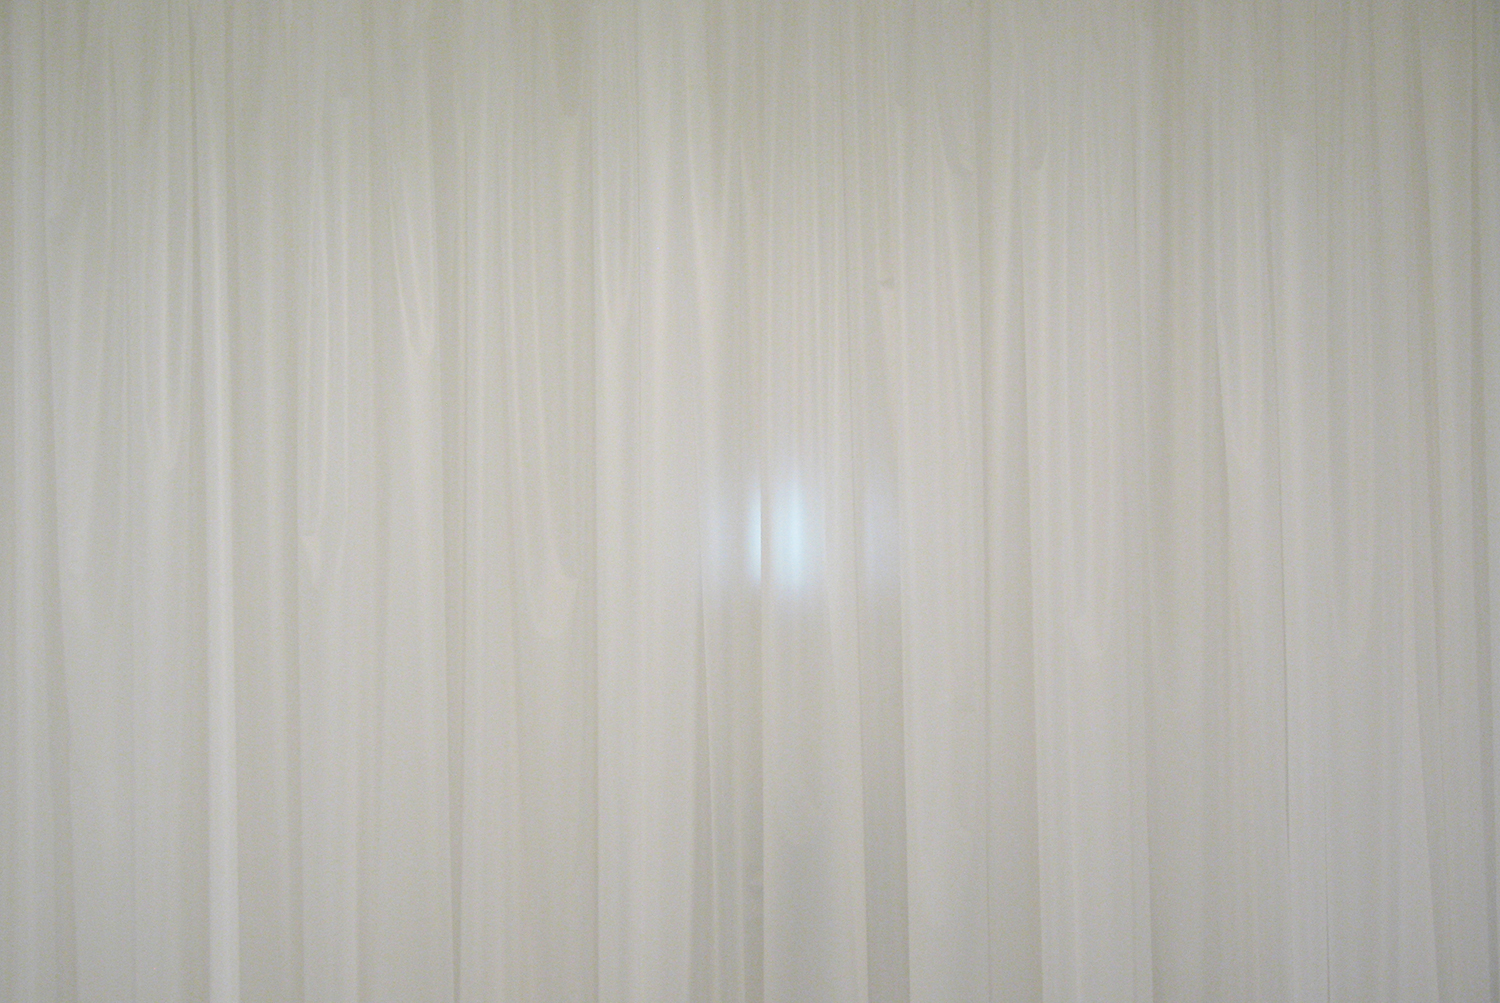 detail:カーテンの向う|beyond curtain / シロイ カーテン|white curtain<br>Plastic sheet, video  h3000 x w4430 mm 2010